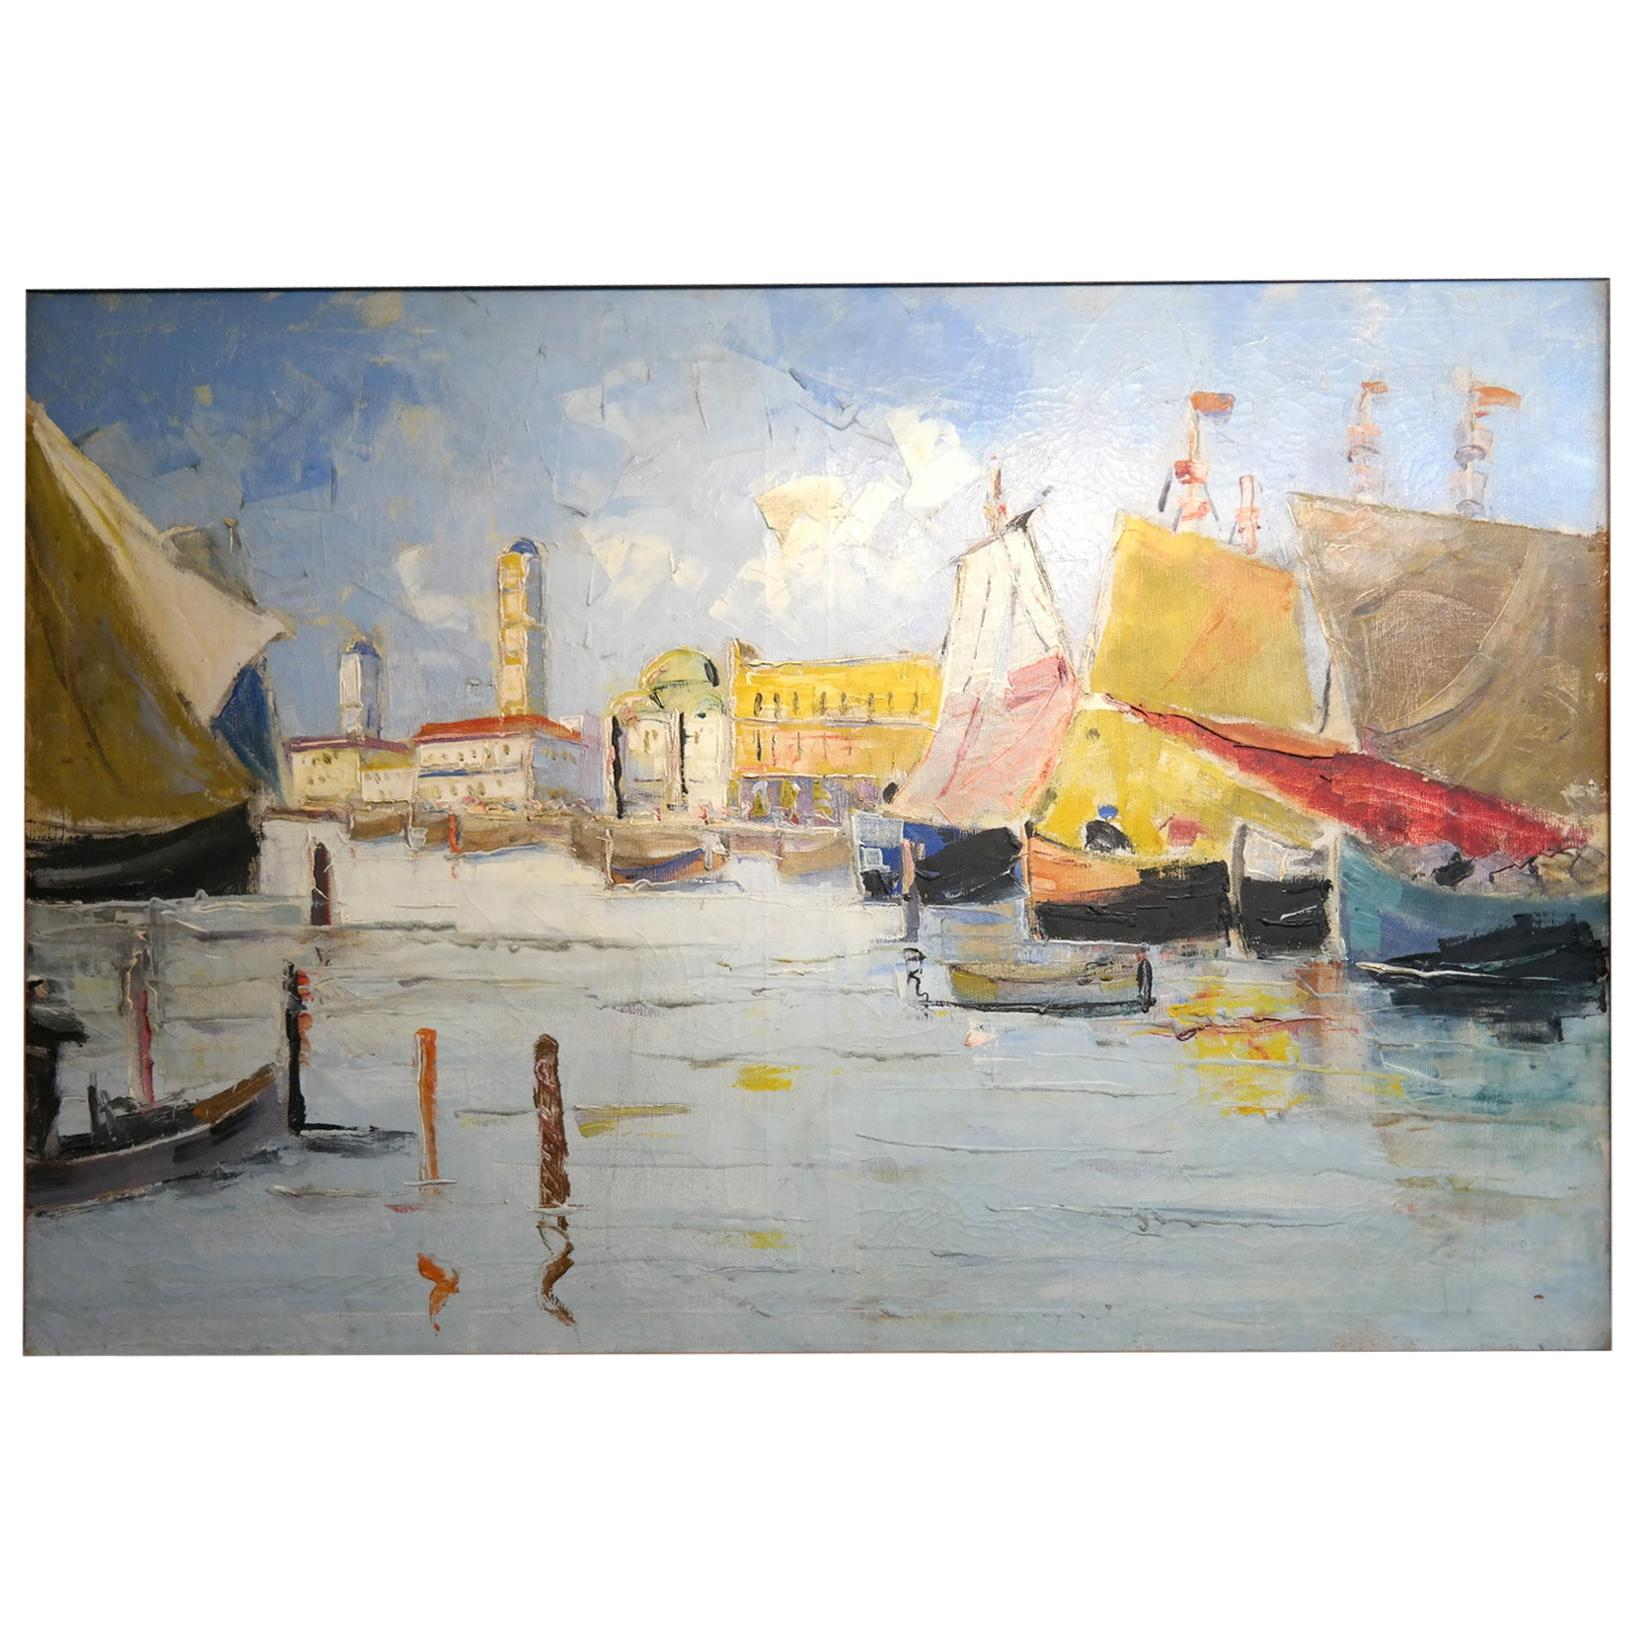 Venice Scene, Unknown, Oil on Canvas Painting, 1910s